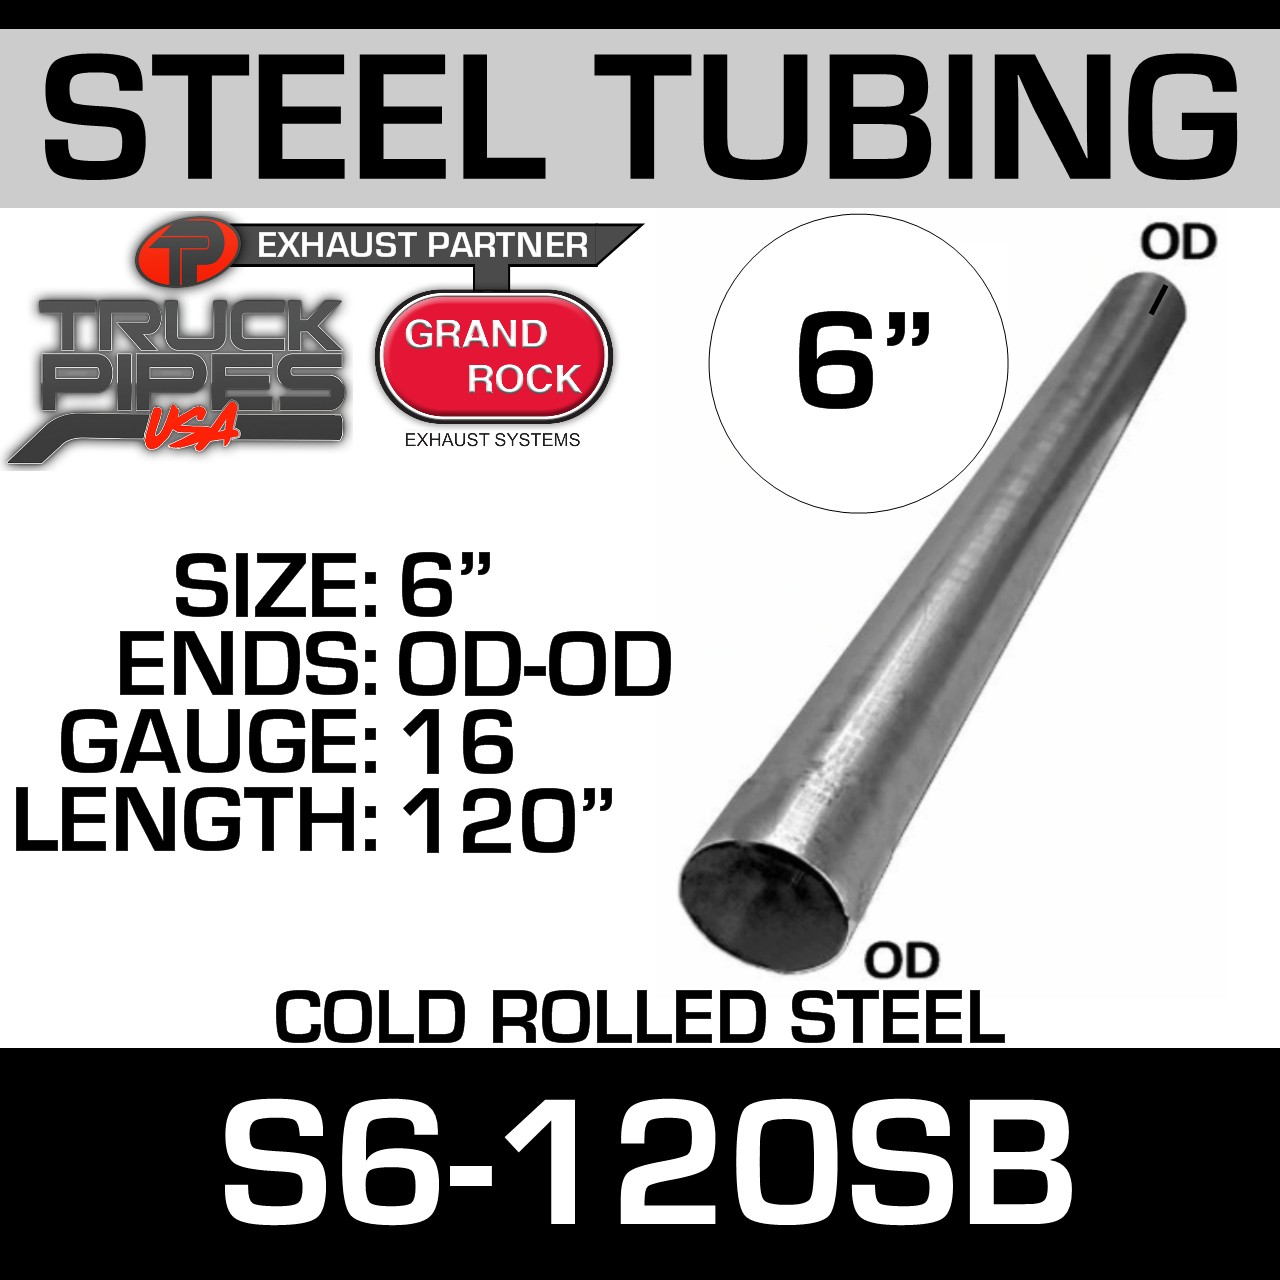 s6-120sb-cold-roll-steel-exhaust-tubing-6-inch-diameter-od-end-120-inches-long.jpg